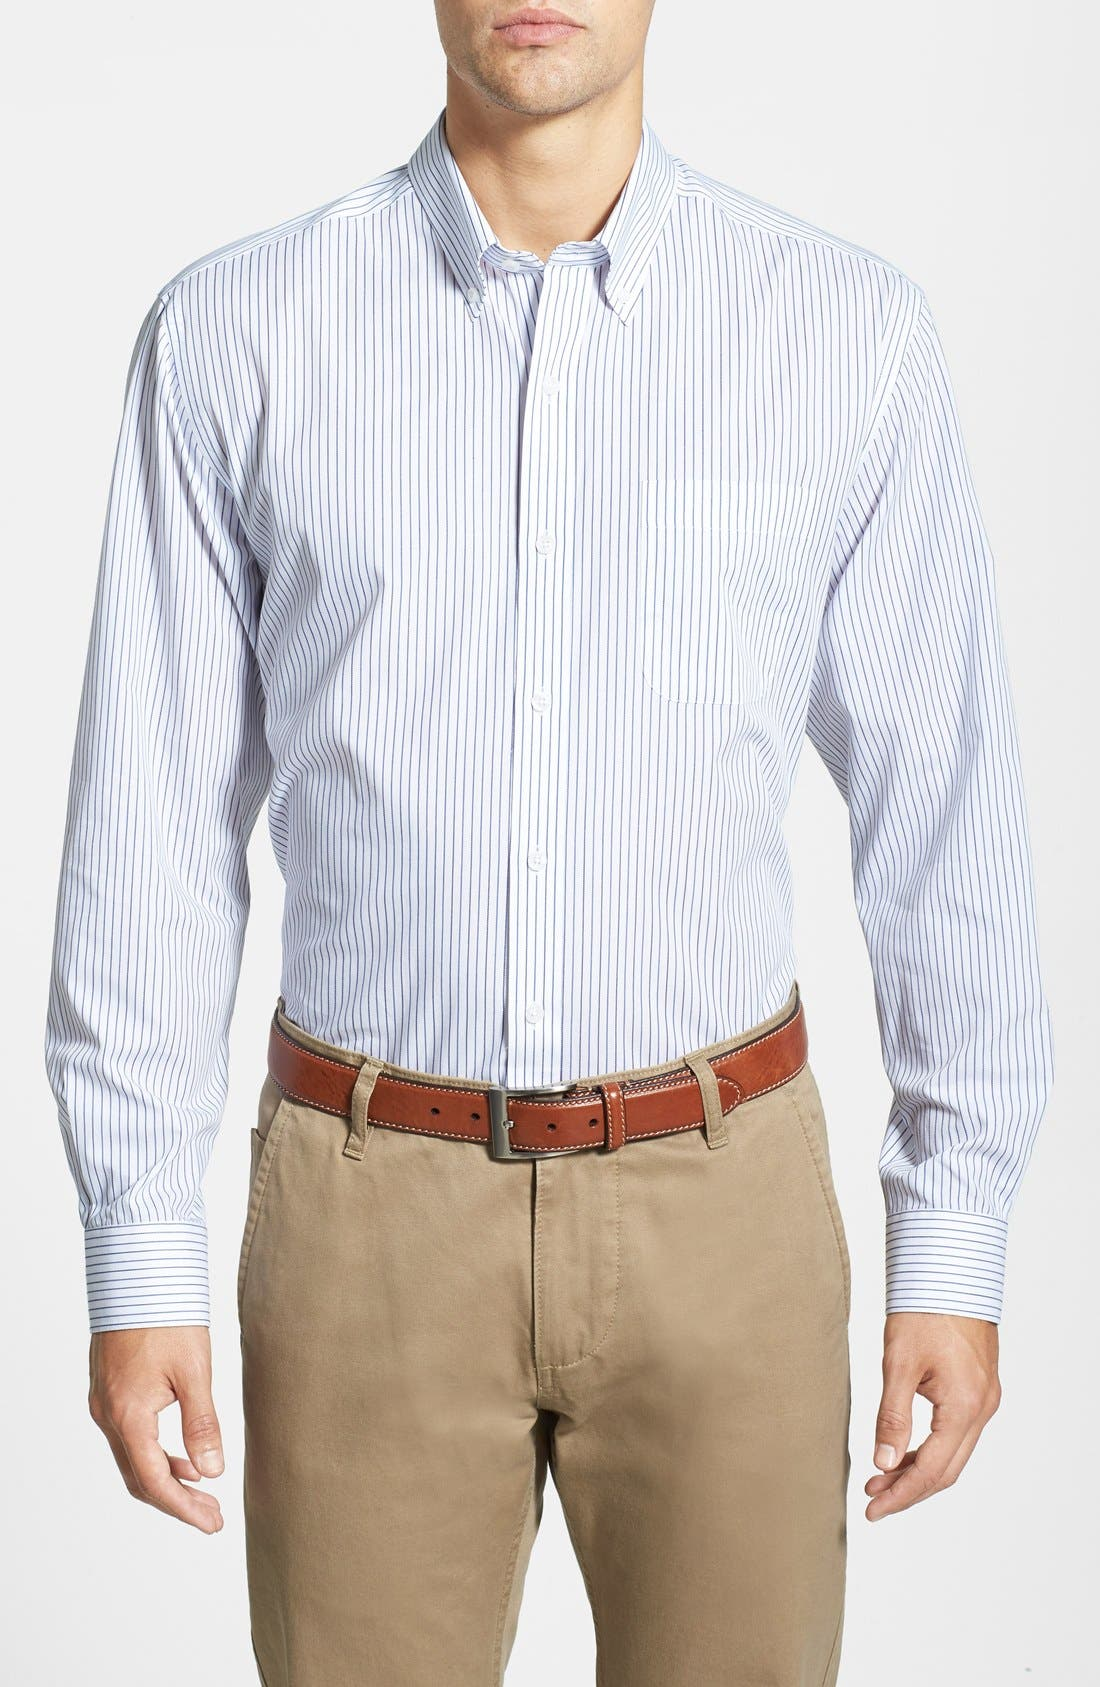 Cutter & Buck 'Epic Easy Care' Classic Fit Vertical Pinstripe Wrinkle Resistant Sport Shirt